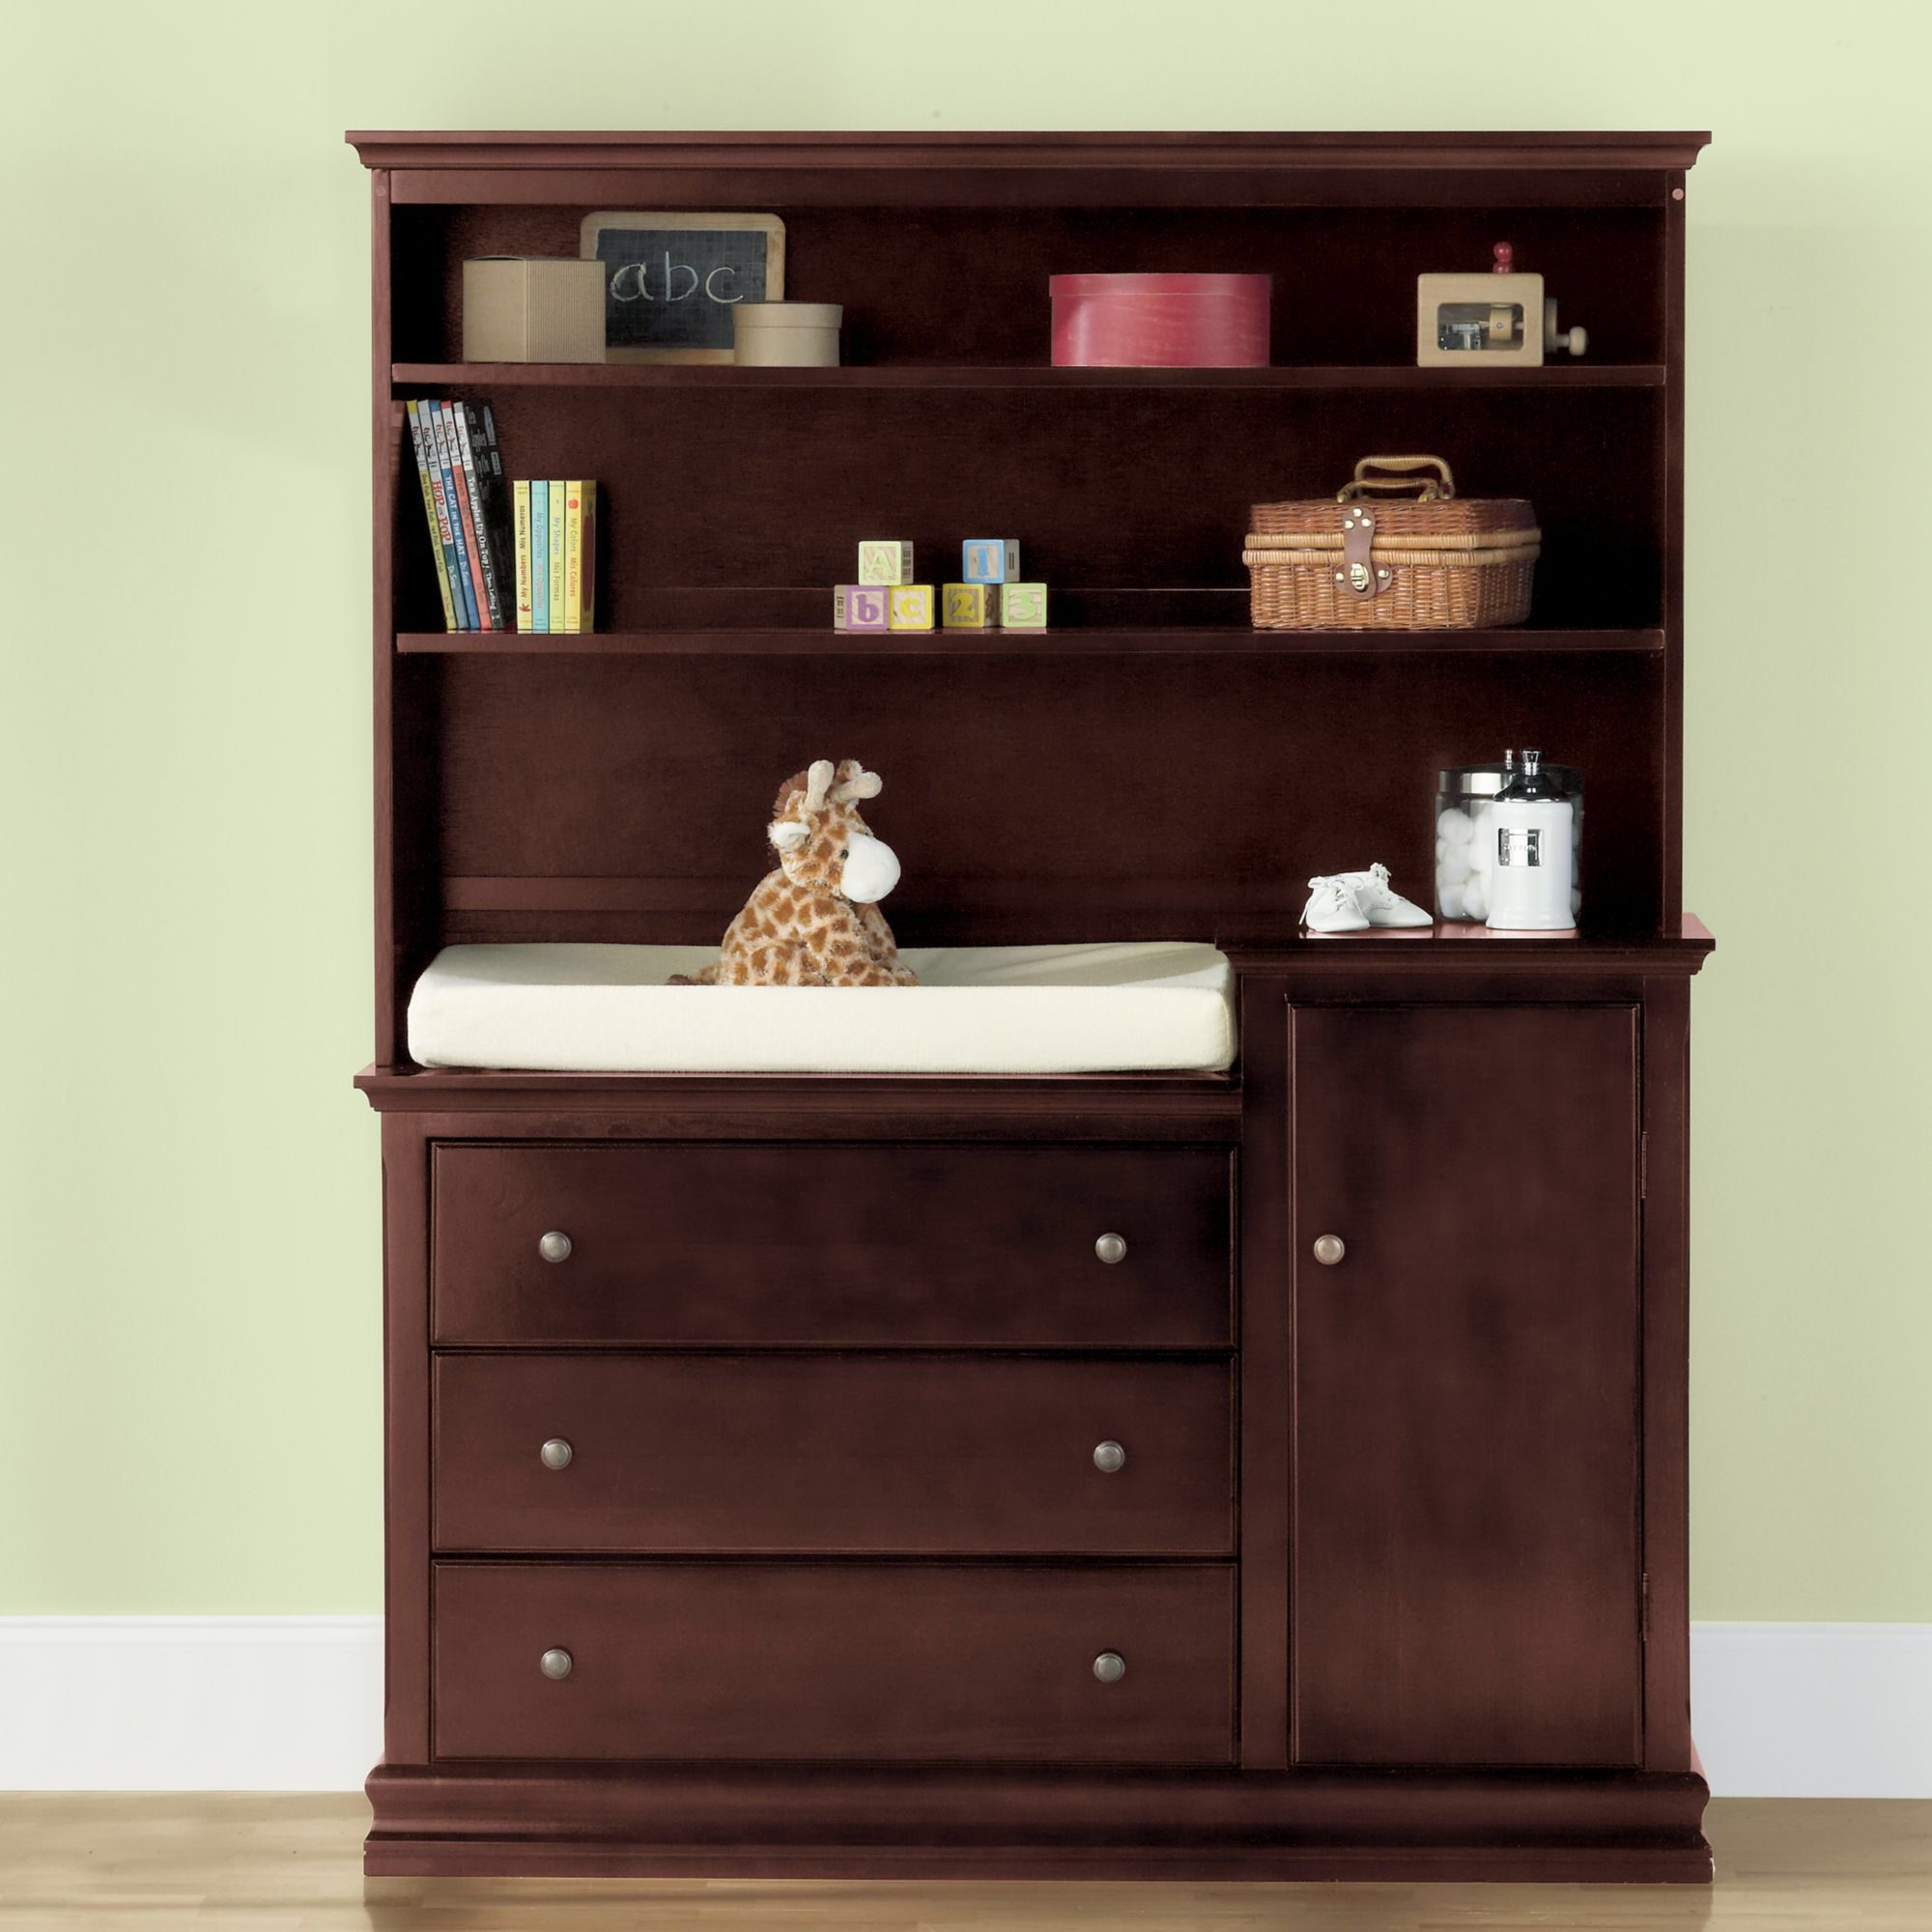 Exceptional Savanna Tori Changing Table Or Hutch   Espresso By JCPenney On HeartThis